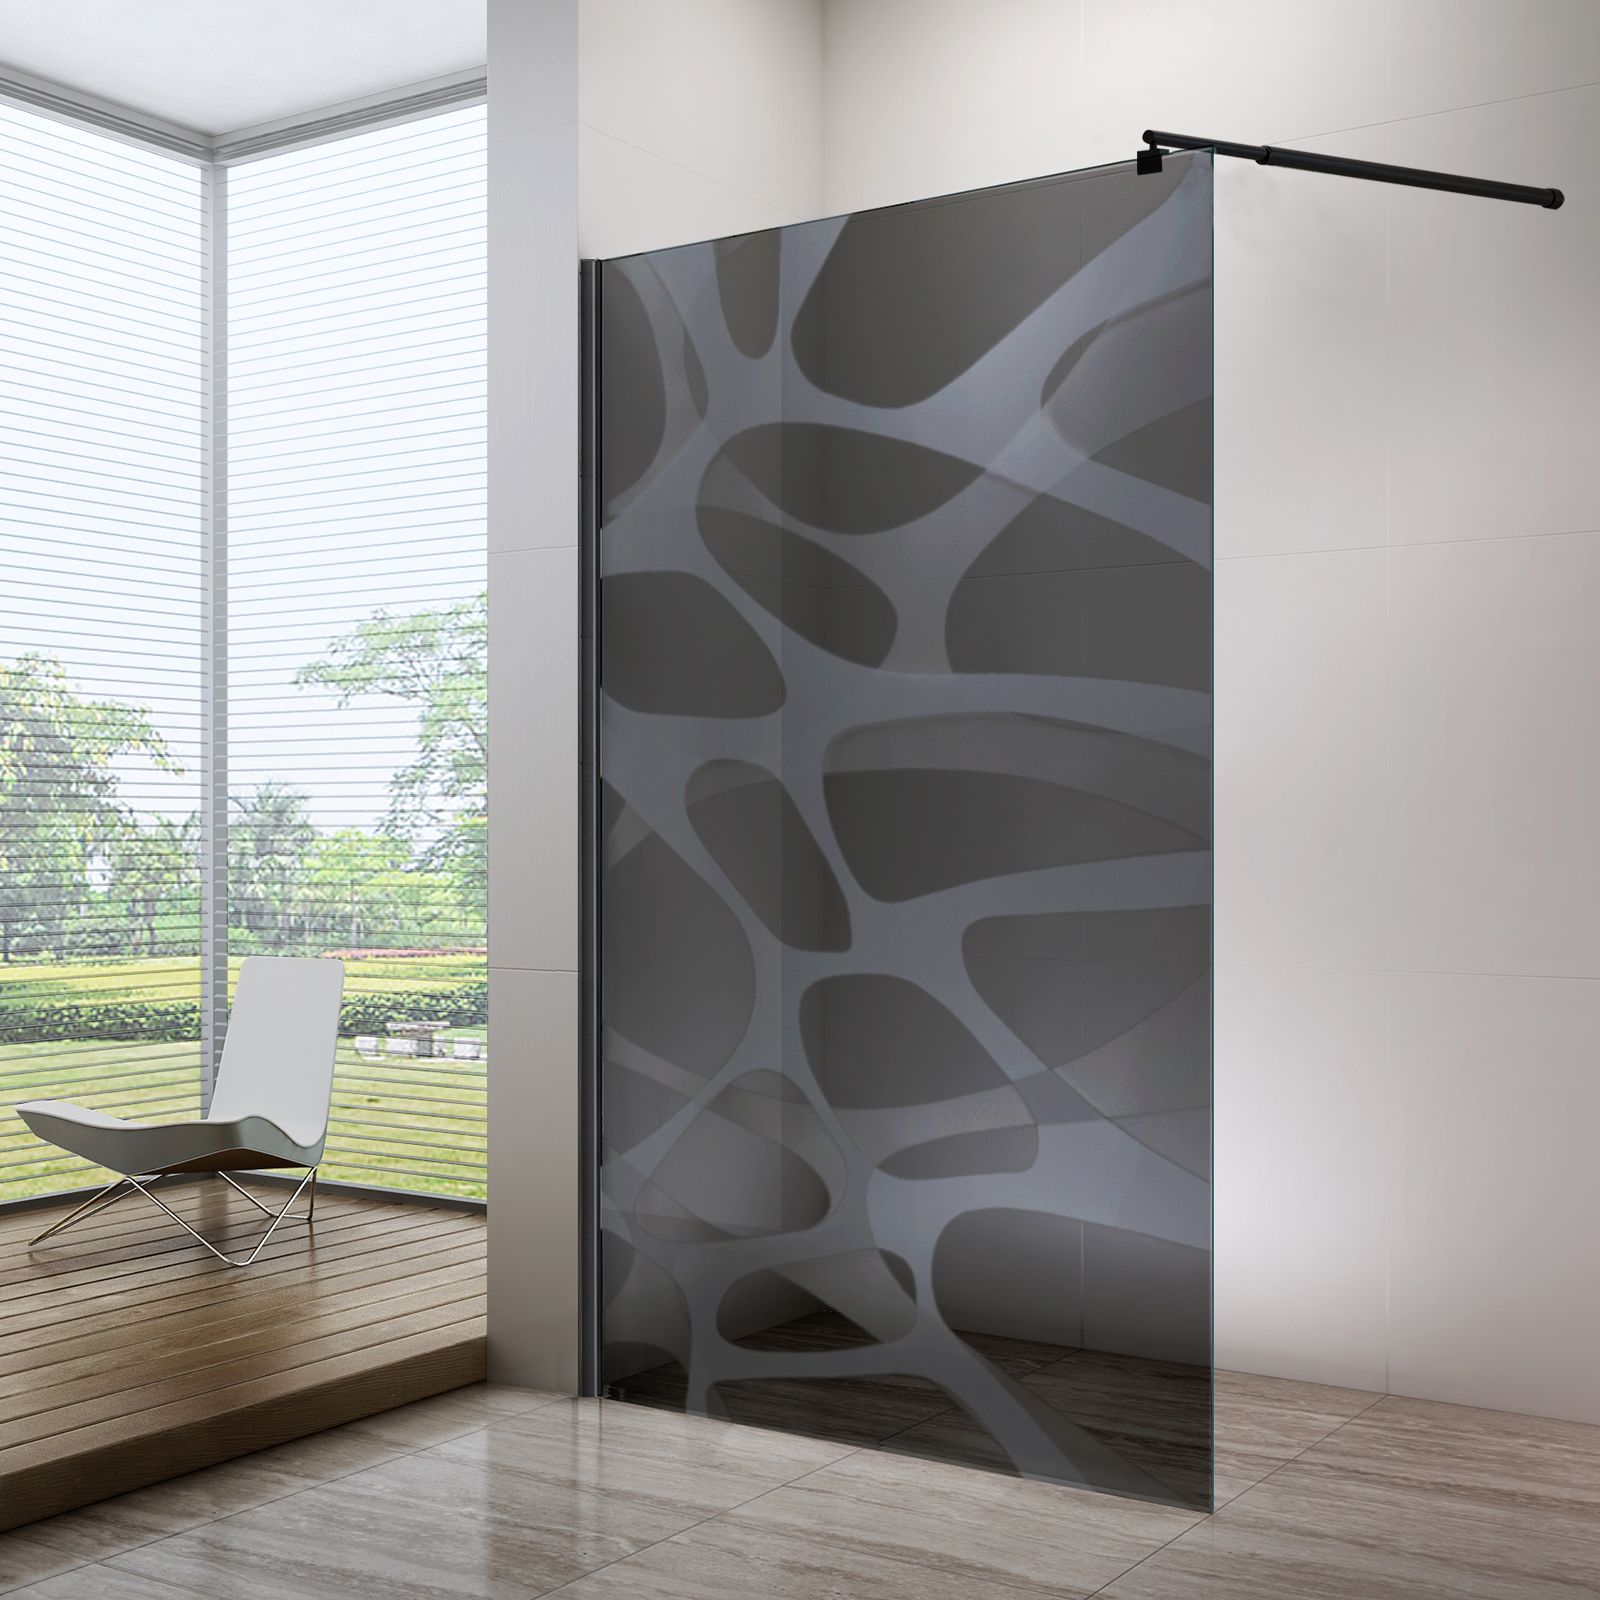 Nano coated Walk-in shower enclosure EX101  - 8mm tempered glass with Black/Grey Wave pattern - selectable width